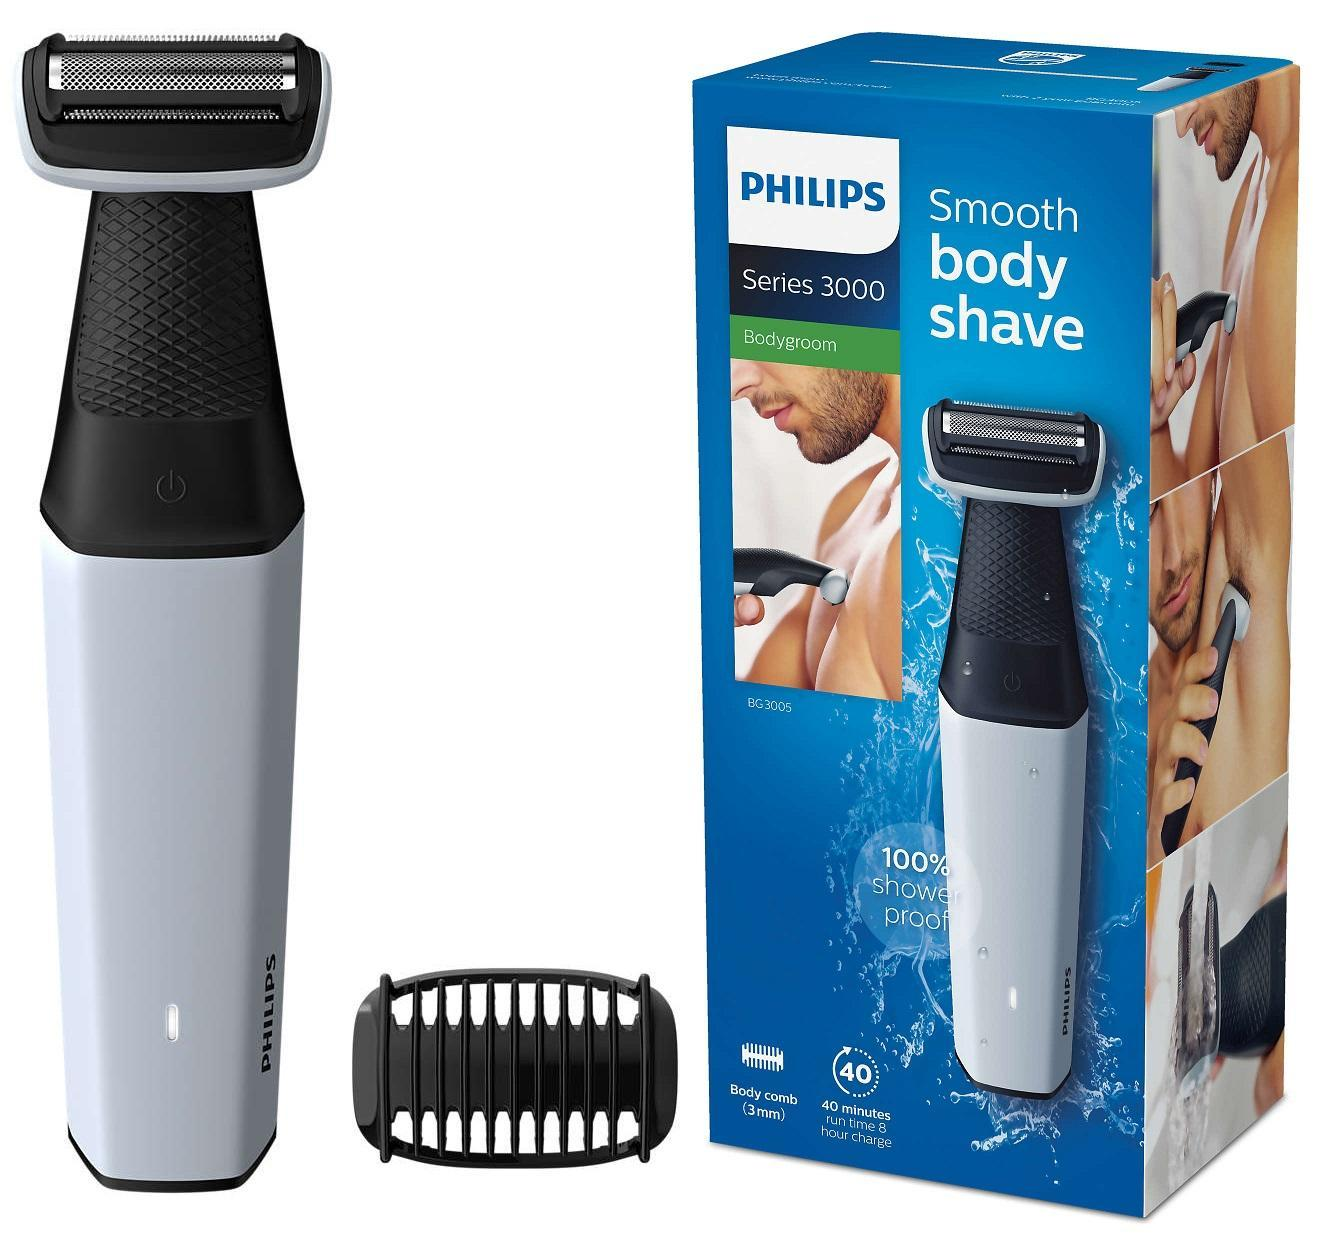 Philips Shaver Pq206 Latest Shavers Products Enjoy Huge Discounts Lazada Sg Bg3005 Bodygroom Series 3000 Smooth Body